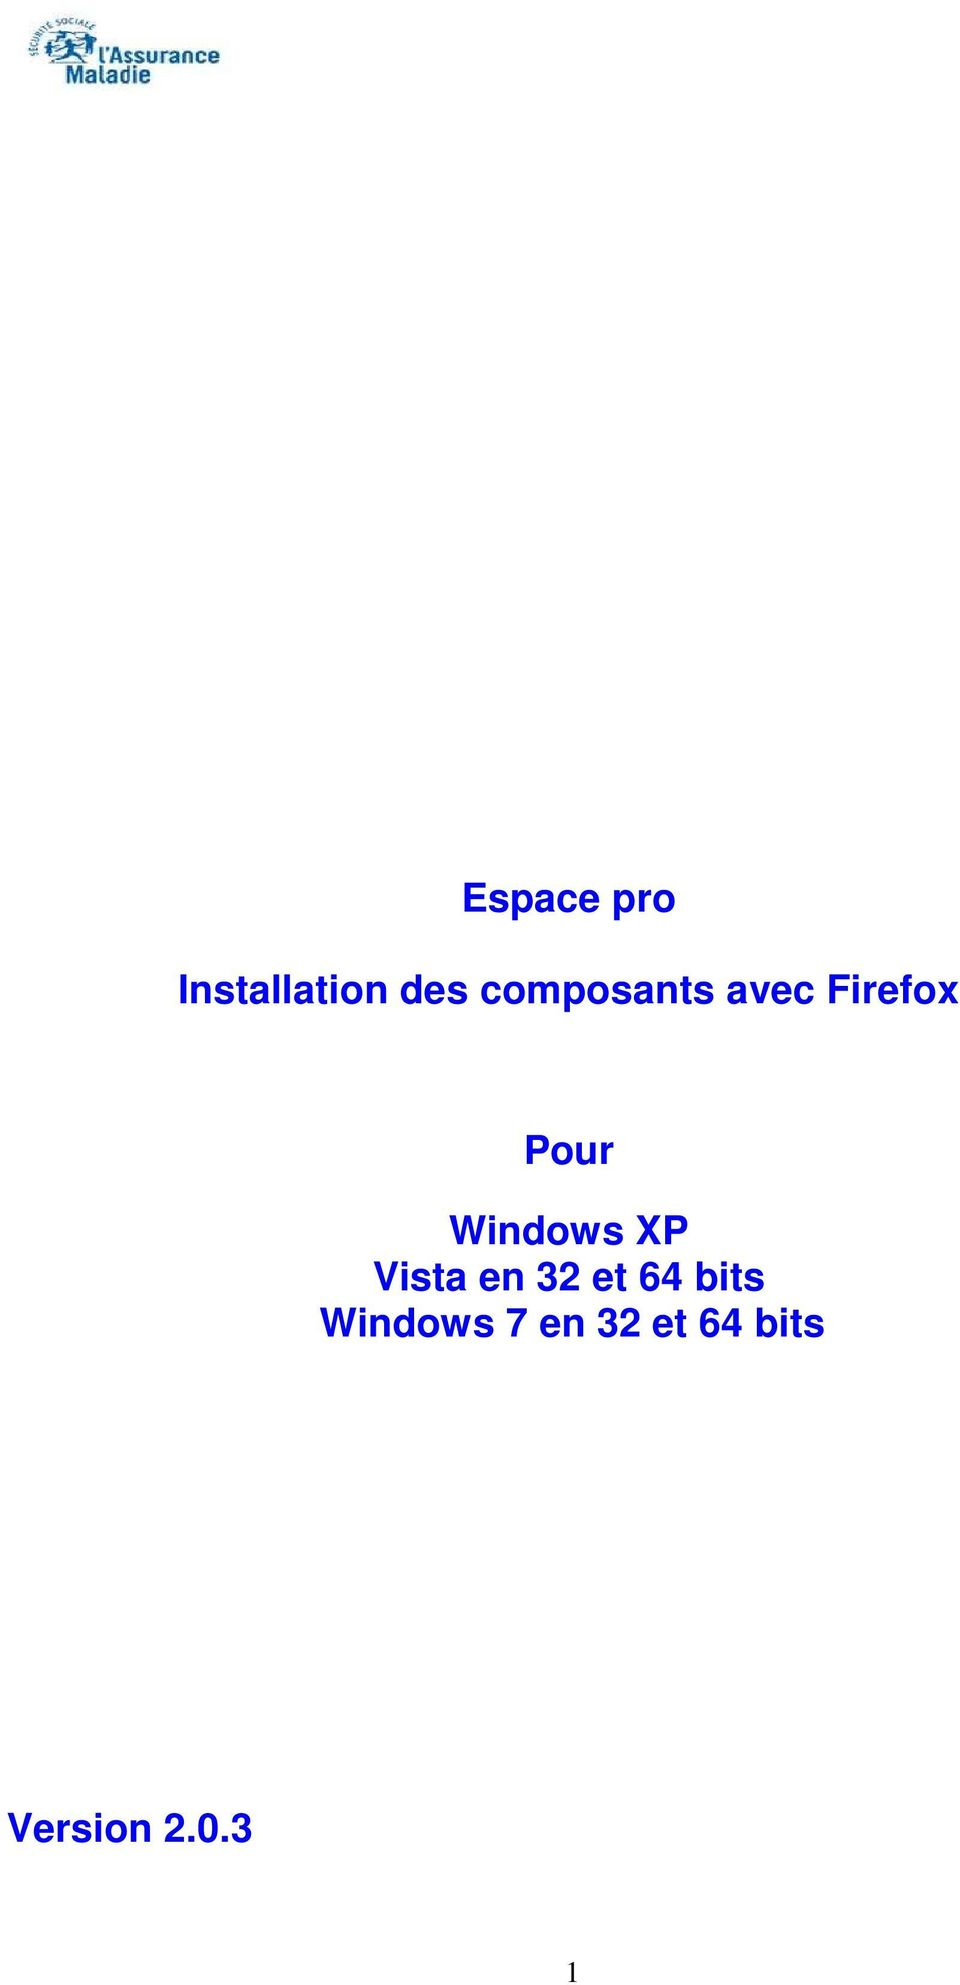 Windows XP Vista en 32 et 64 bits